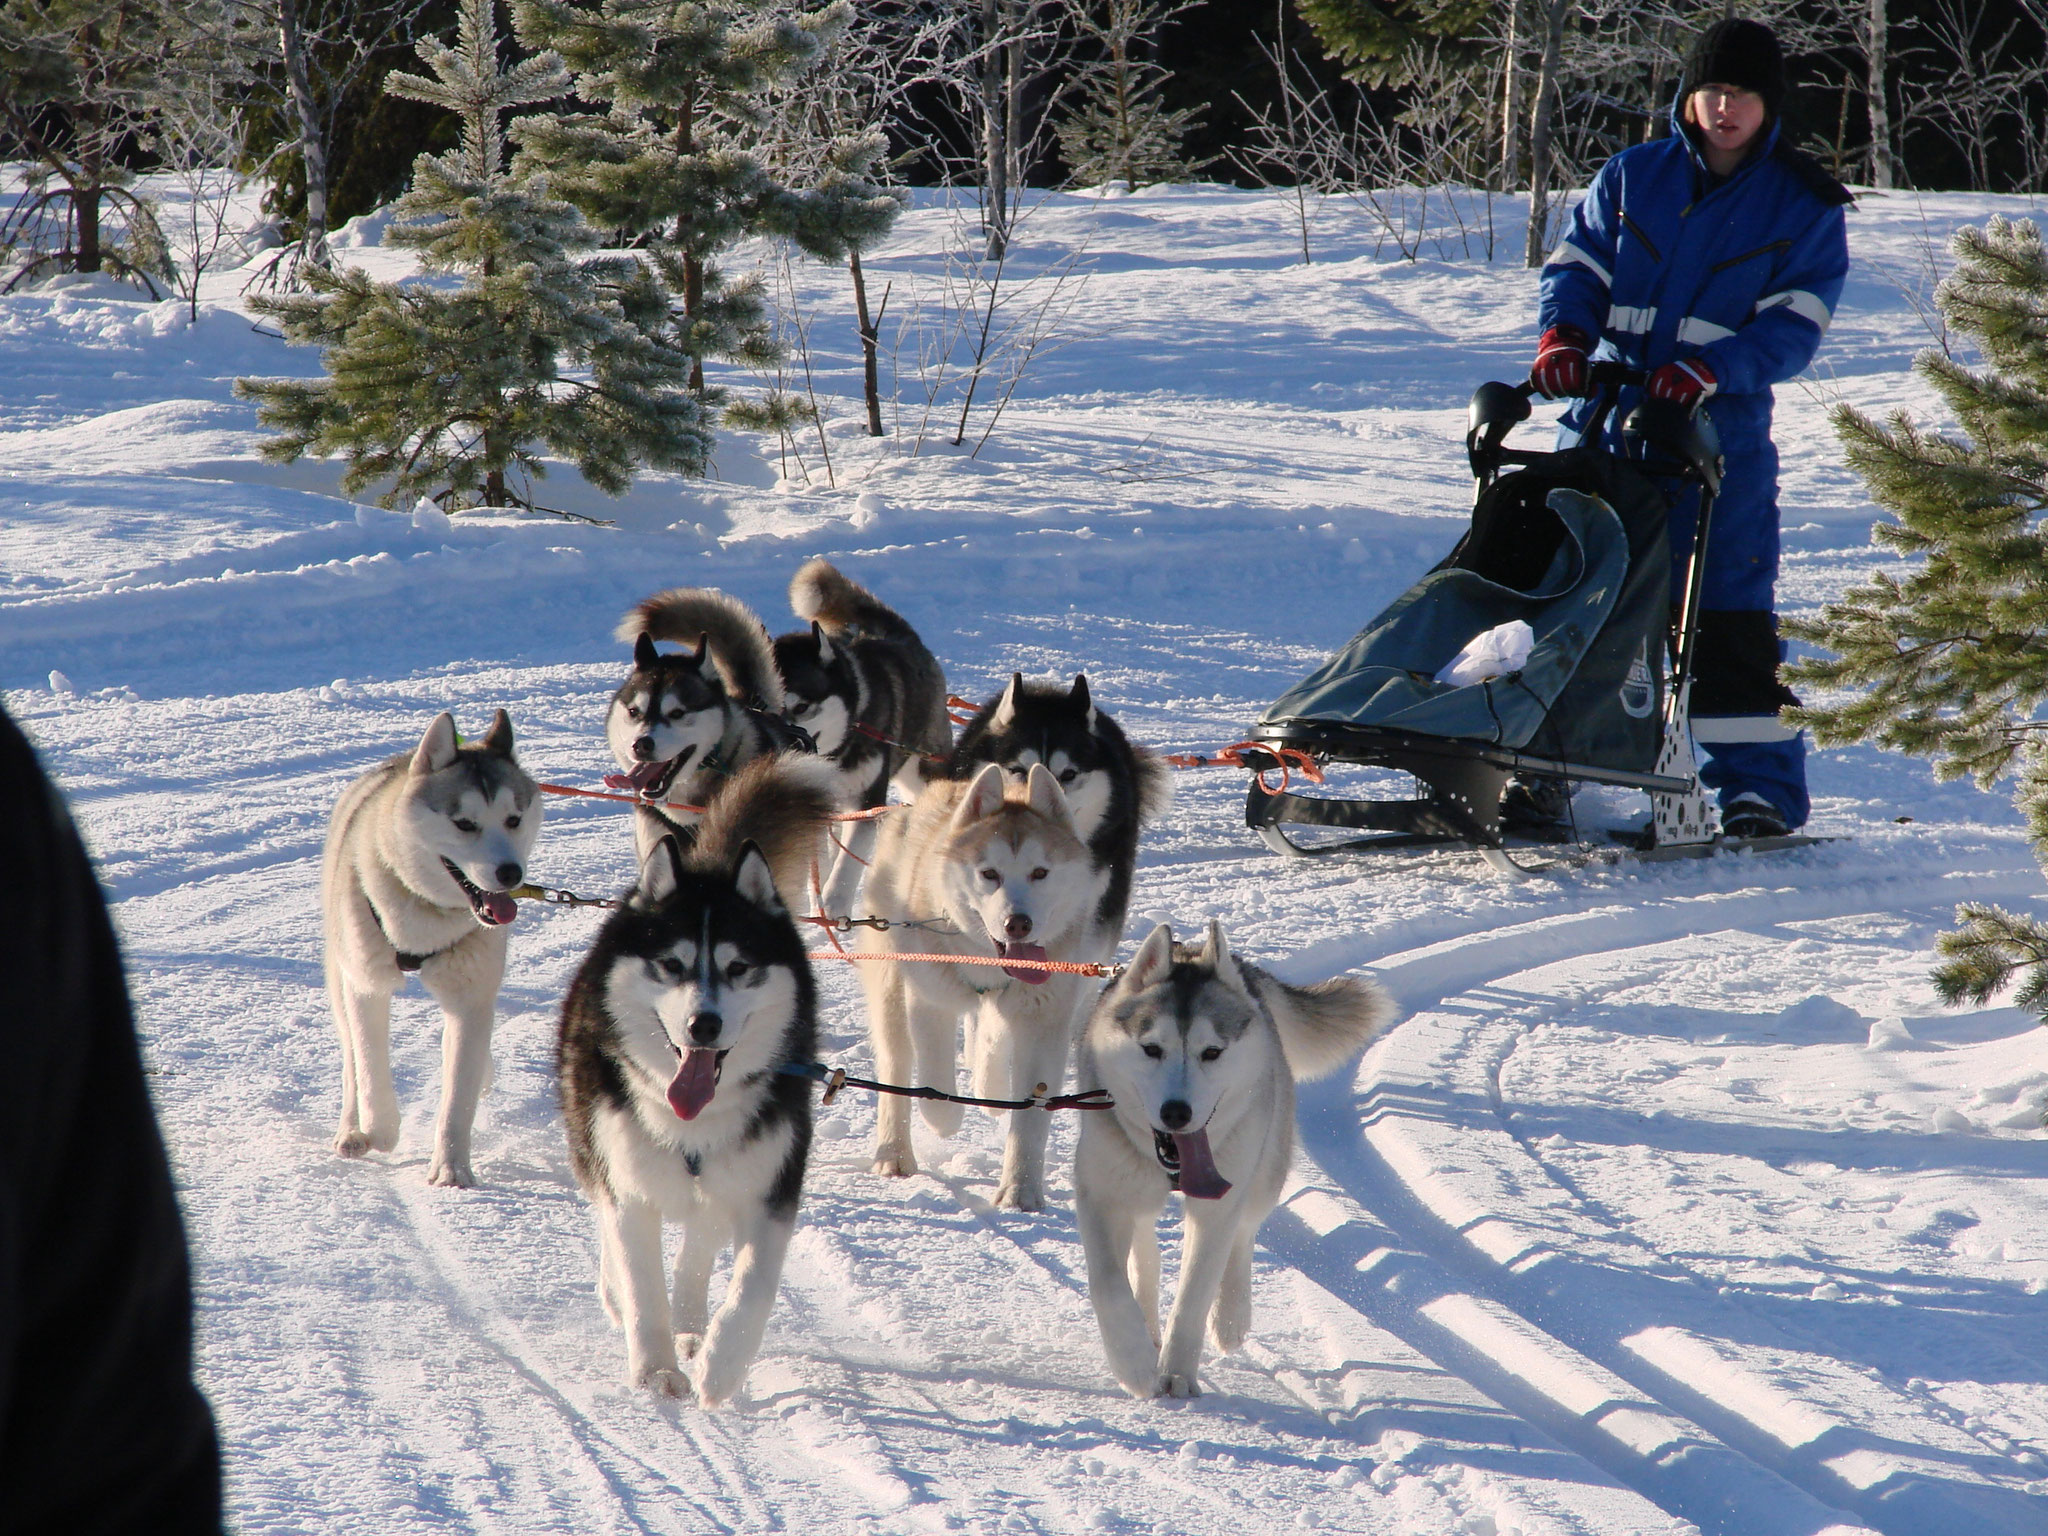 sled dogs race on Rabakkoberg